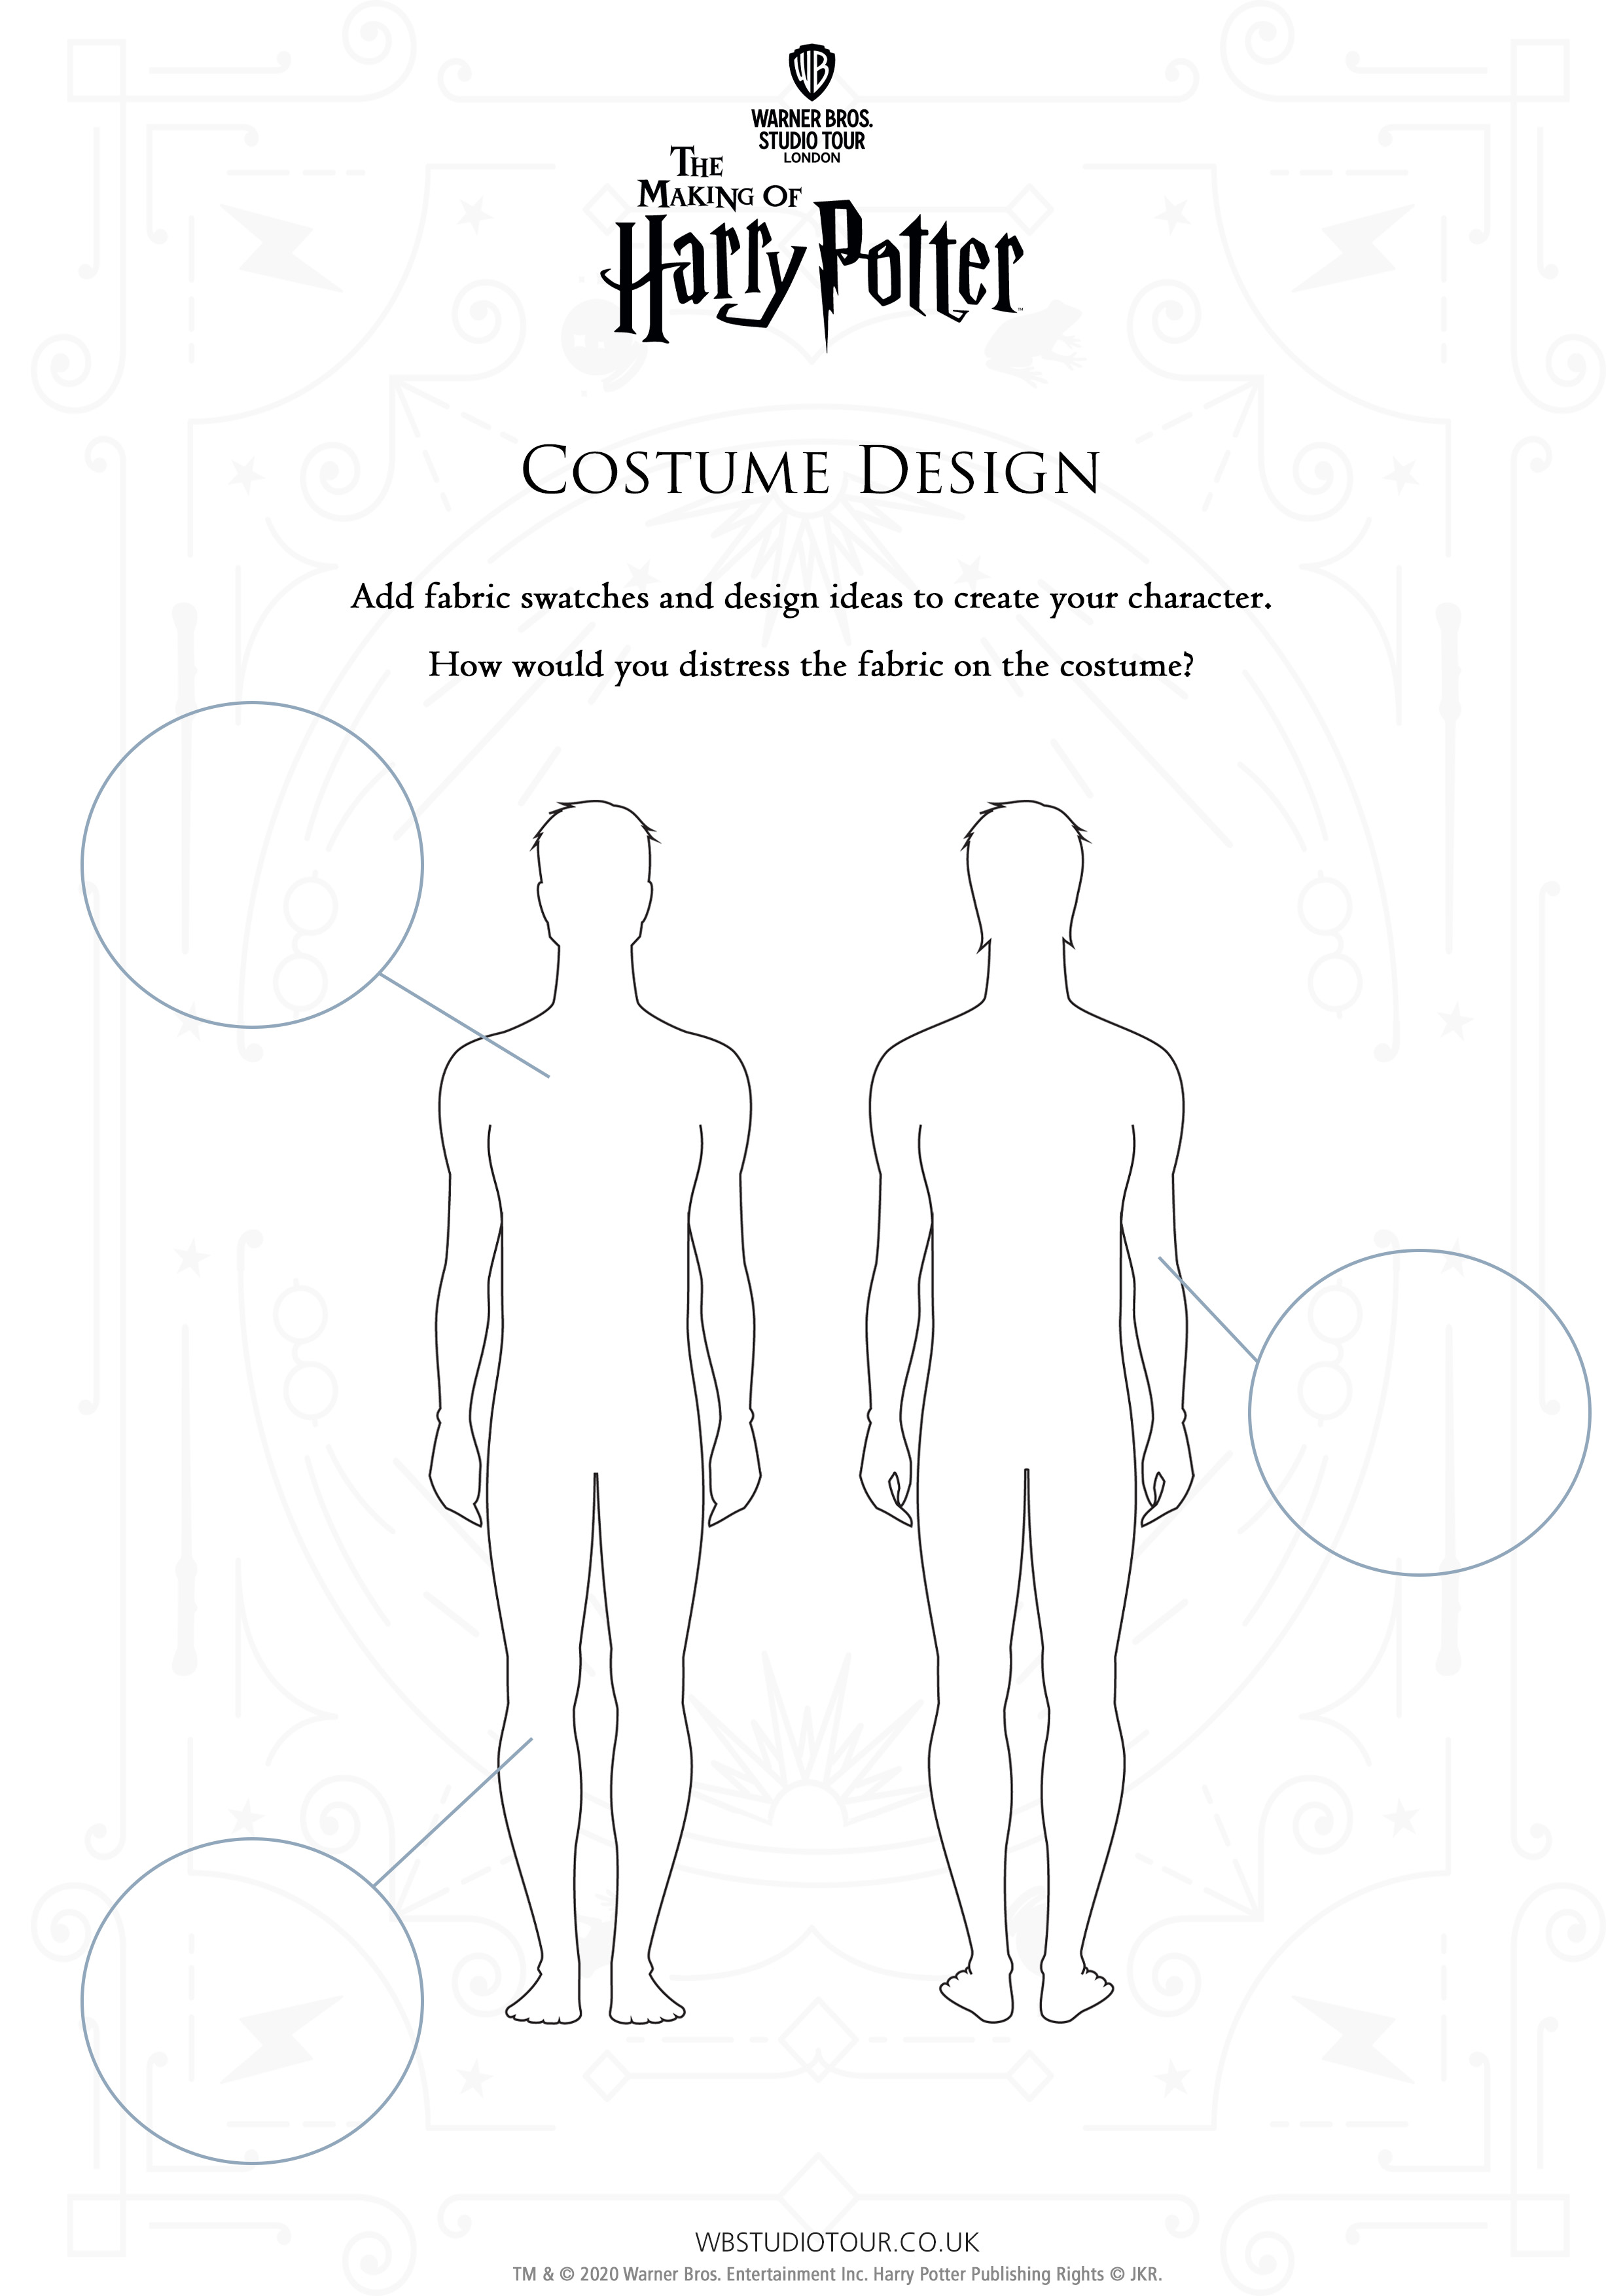 Costume Distressing activity worksheets page 2 - Studio Tour at Home